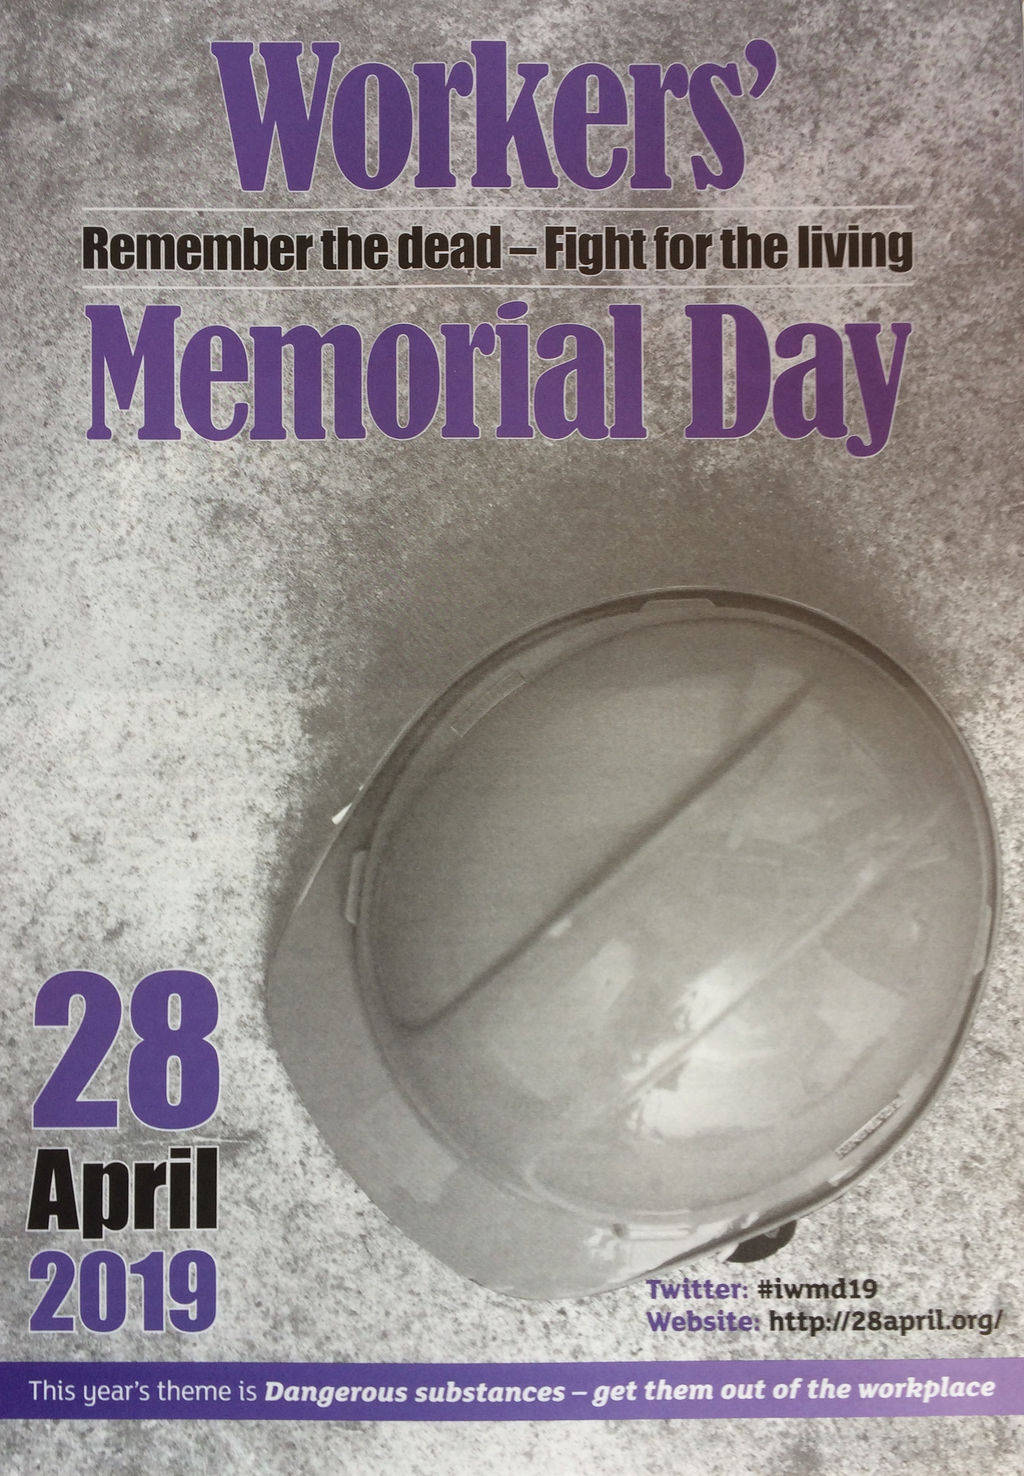 28 April Is Workers Memorial Day